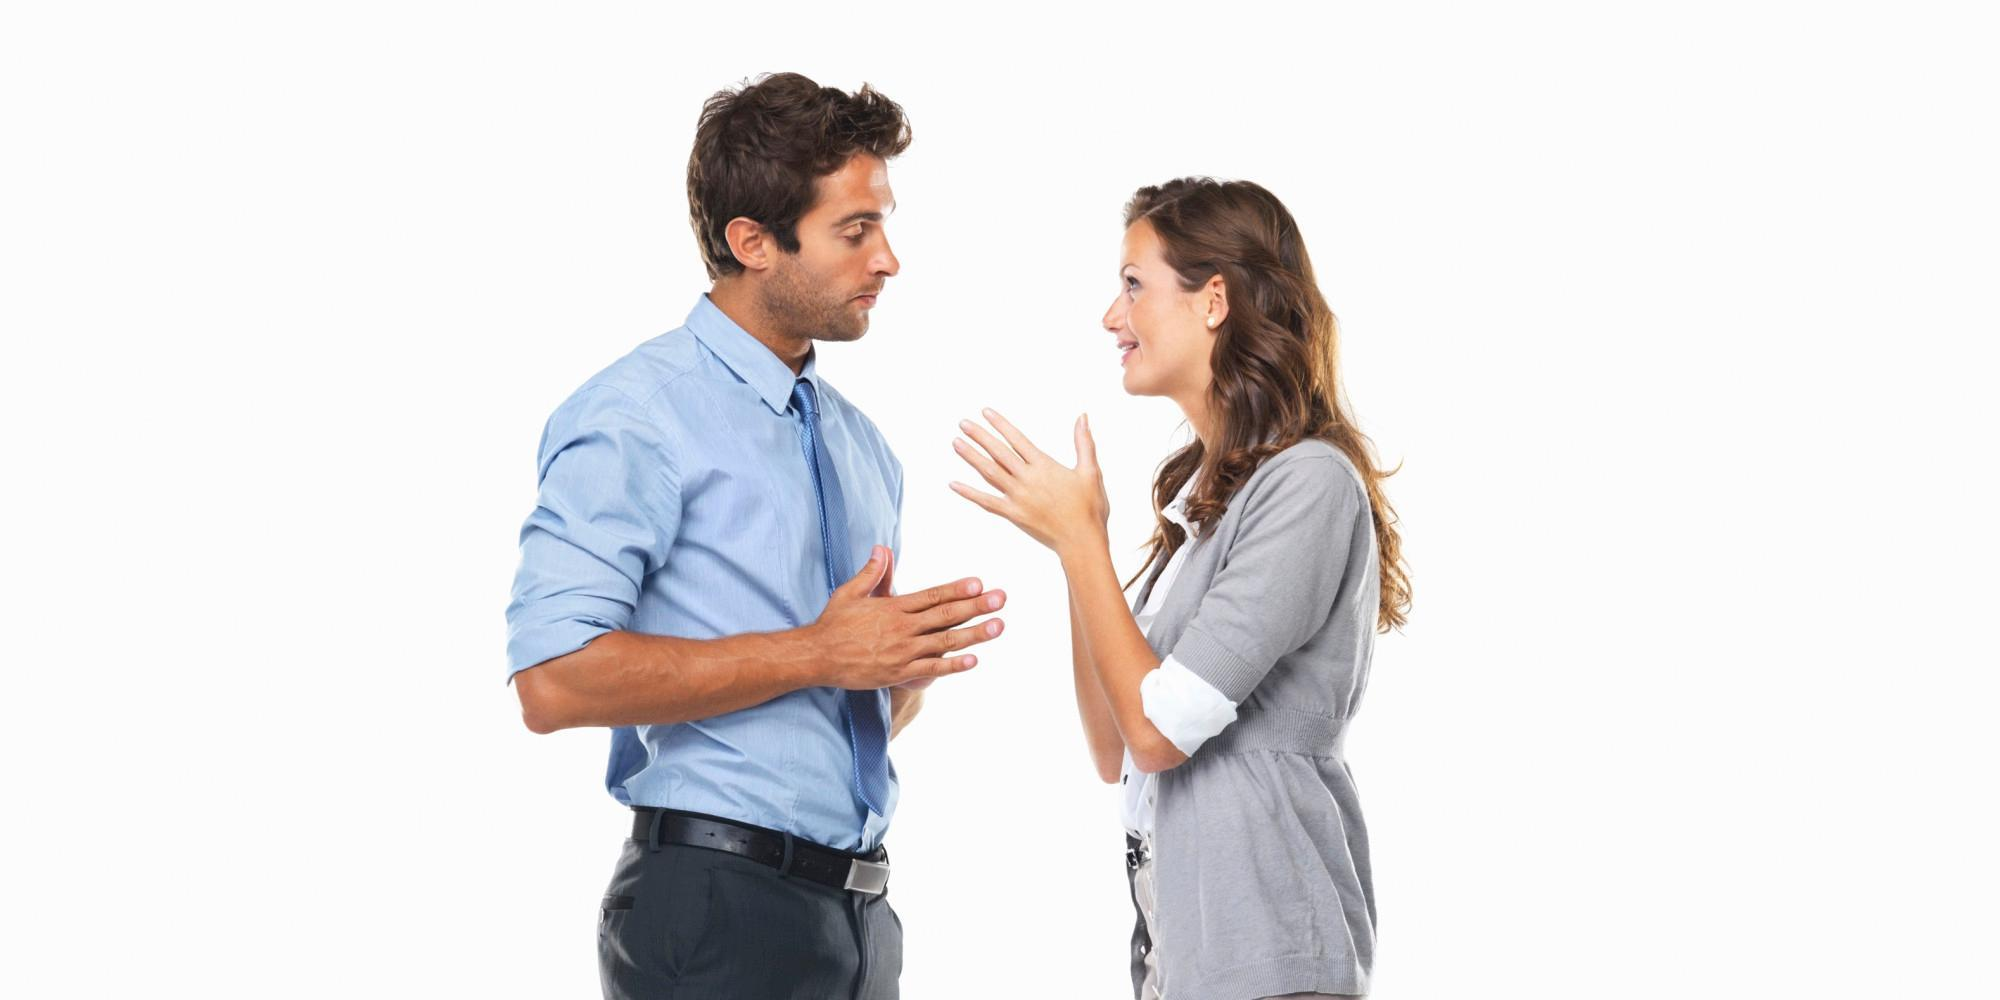 Do you have trouble listening to someone, even when they are speaking directly to you, like your mind is somewhere else?